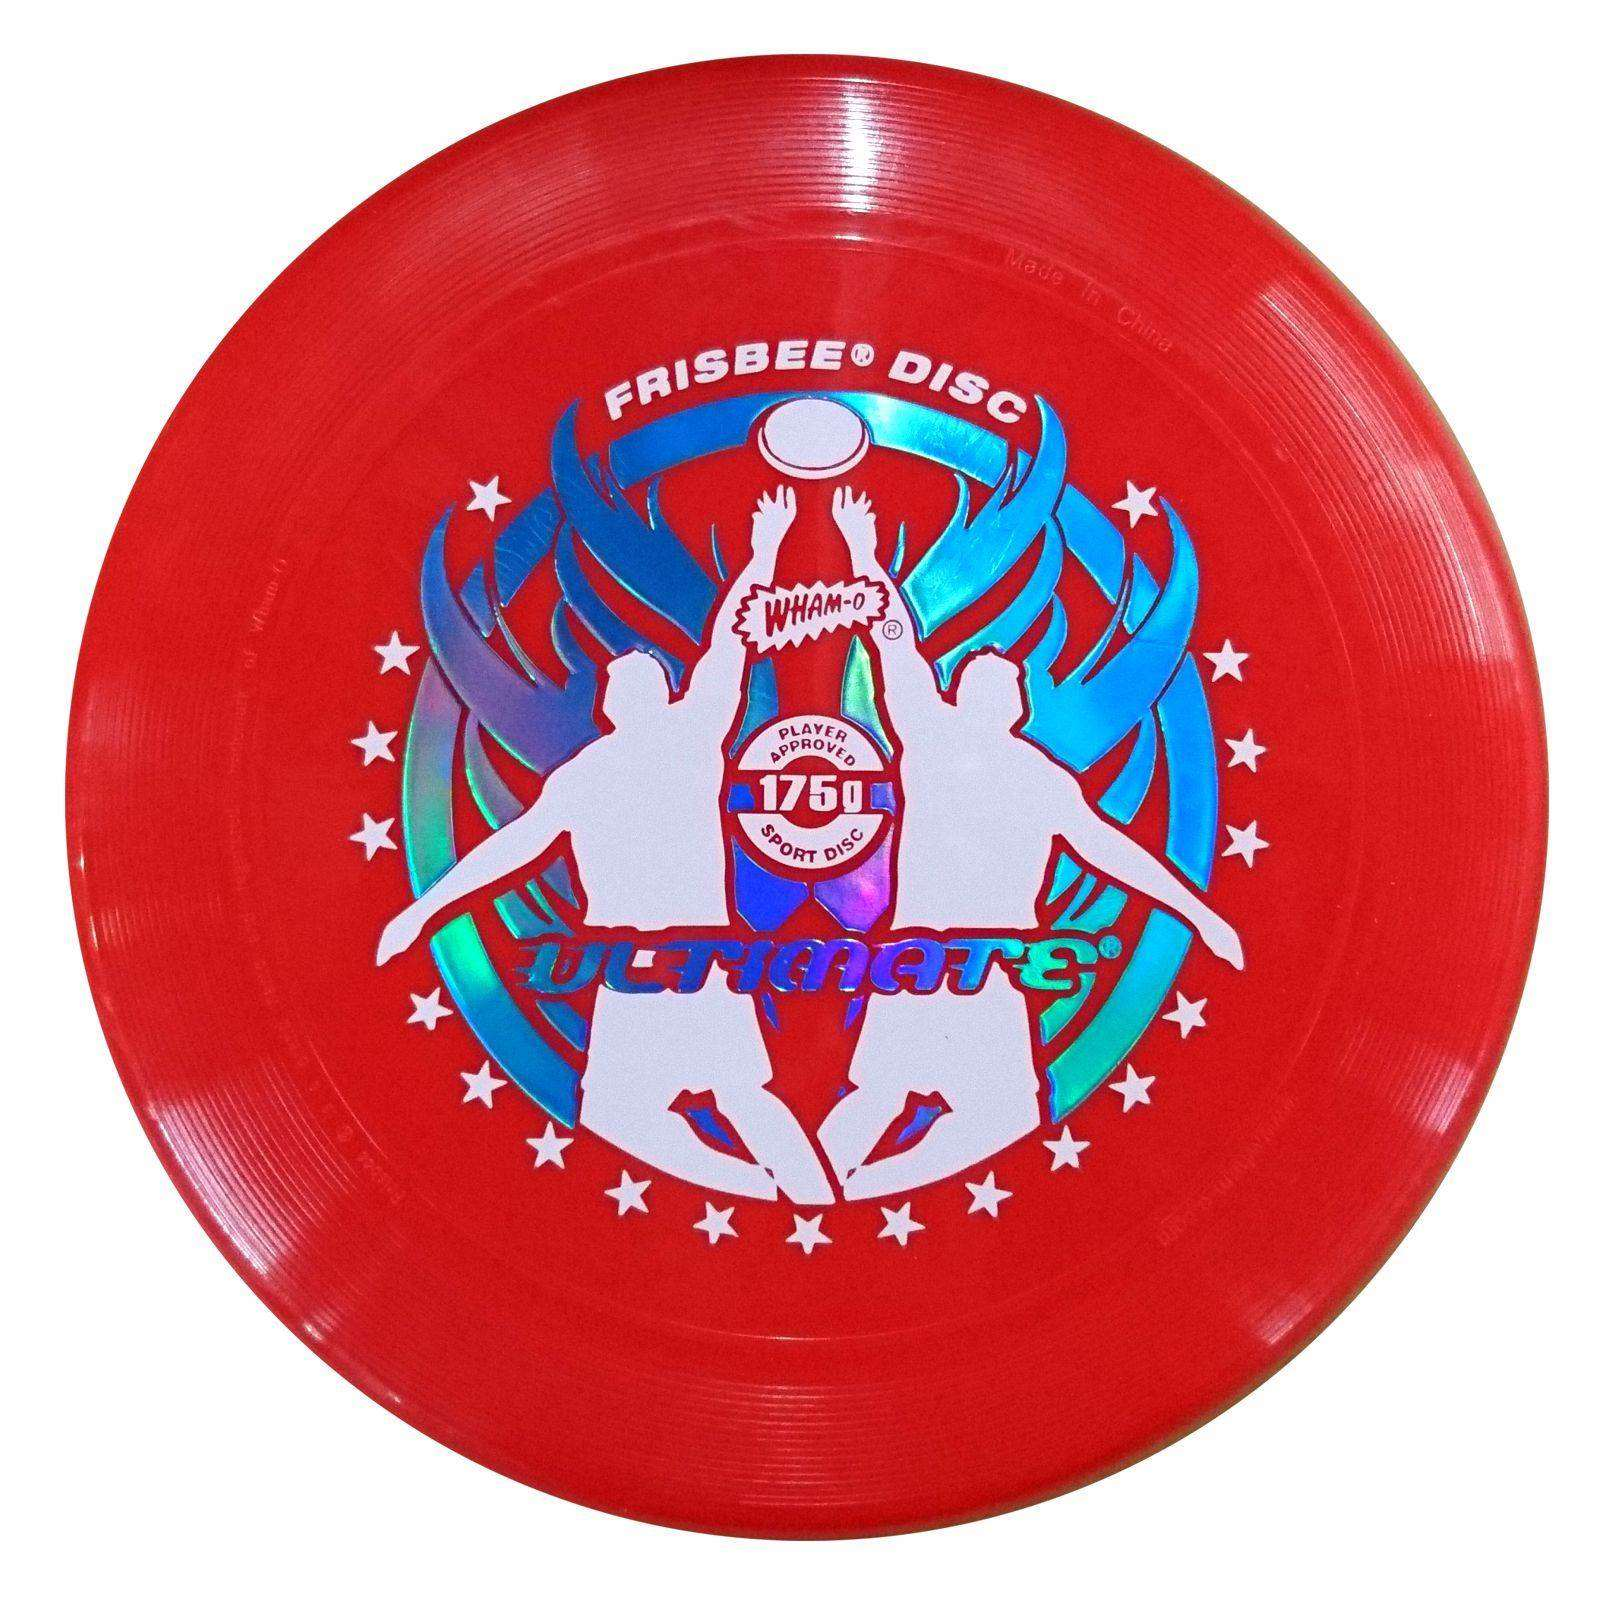 WHAM-O FRISBEE Wurfscheibe Ultimate 175g Rot